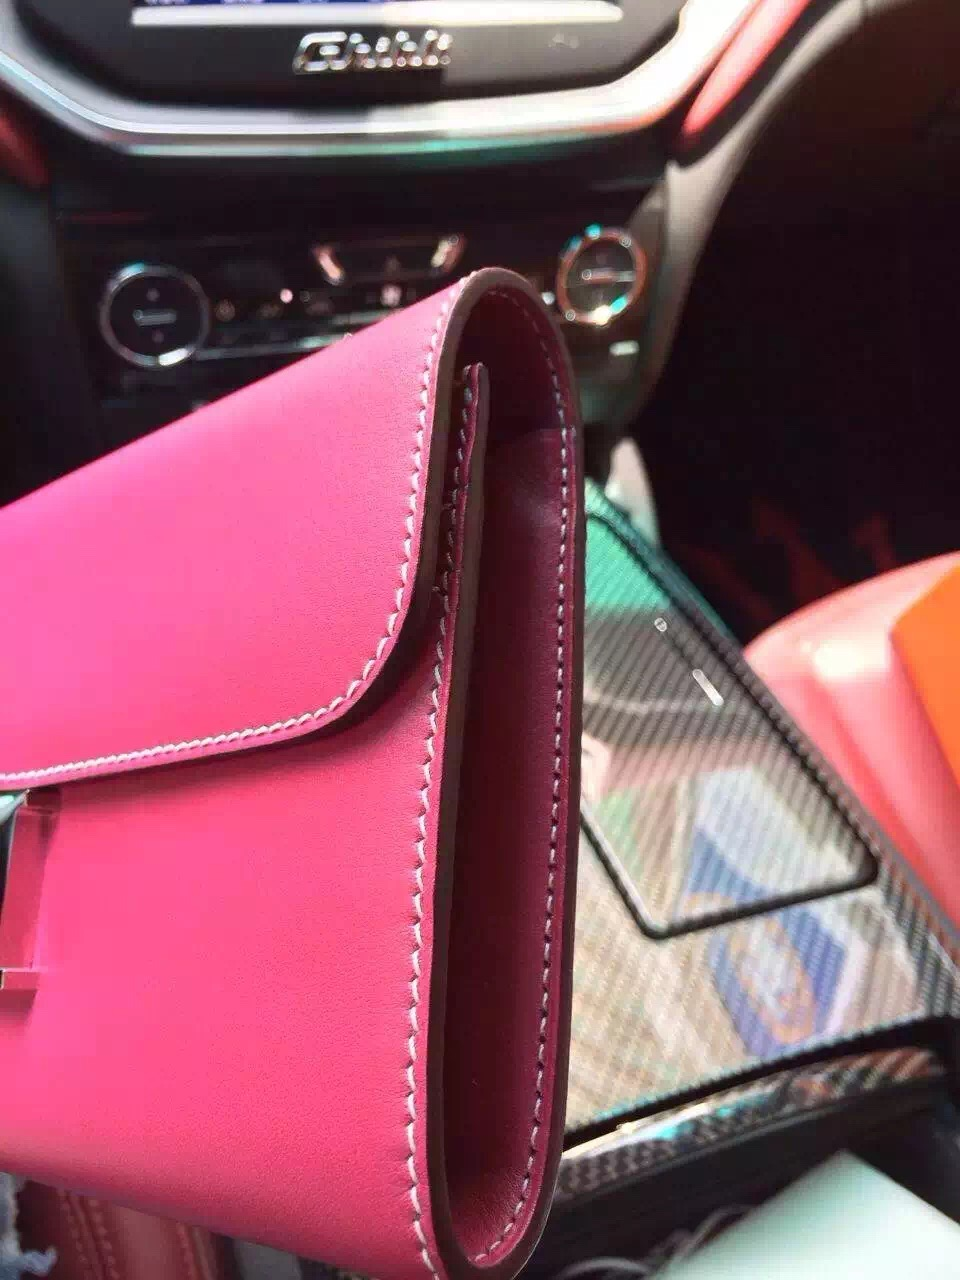 Customized Hermes Hot Pink Swift Leather Constance Wallet Women's Clutch Bag